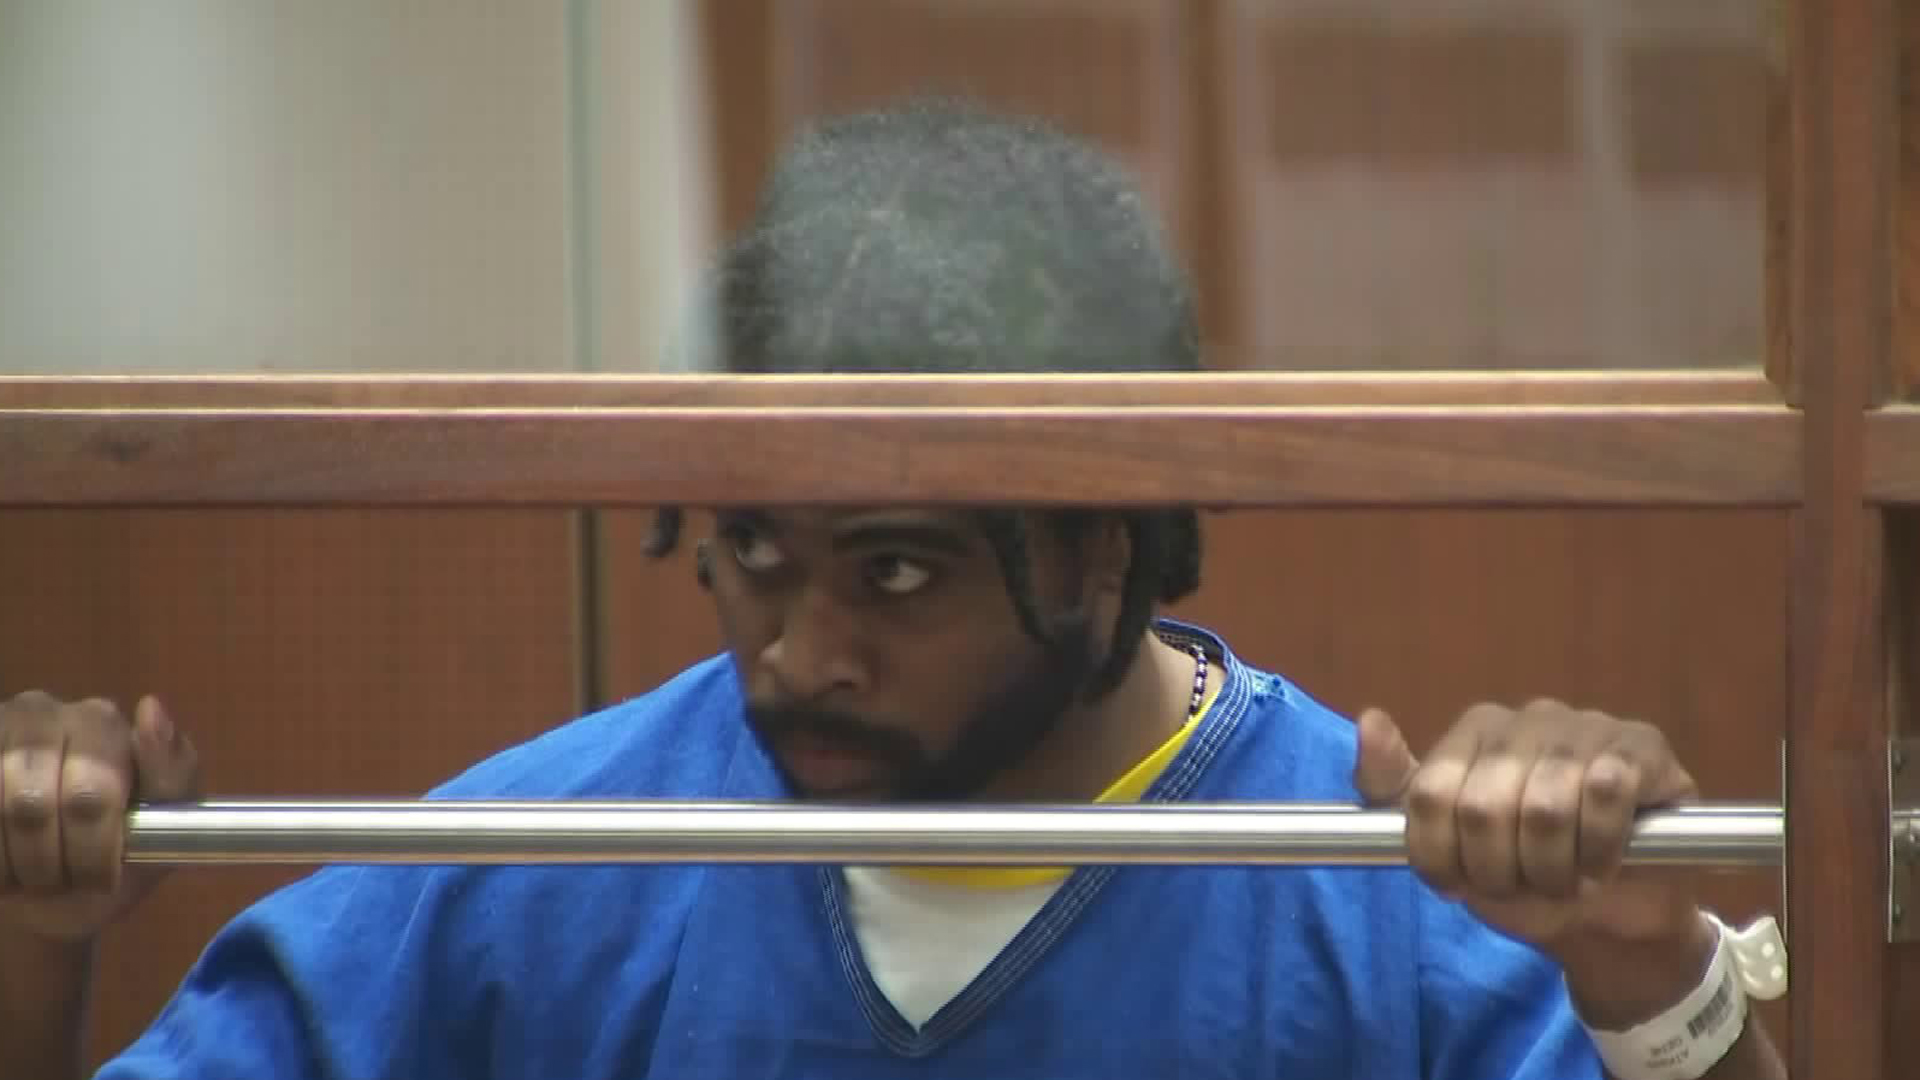 Gene Atkins, 28, appears in Los Angeles County Superior Court on Nov. 7, 2018, where he was expected to be arraigned on murder and other charges in connection with a shootout with police outside a Trader Joe's store that left one woman dead in July 2018. (Credit: KTLA)